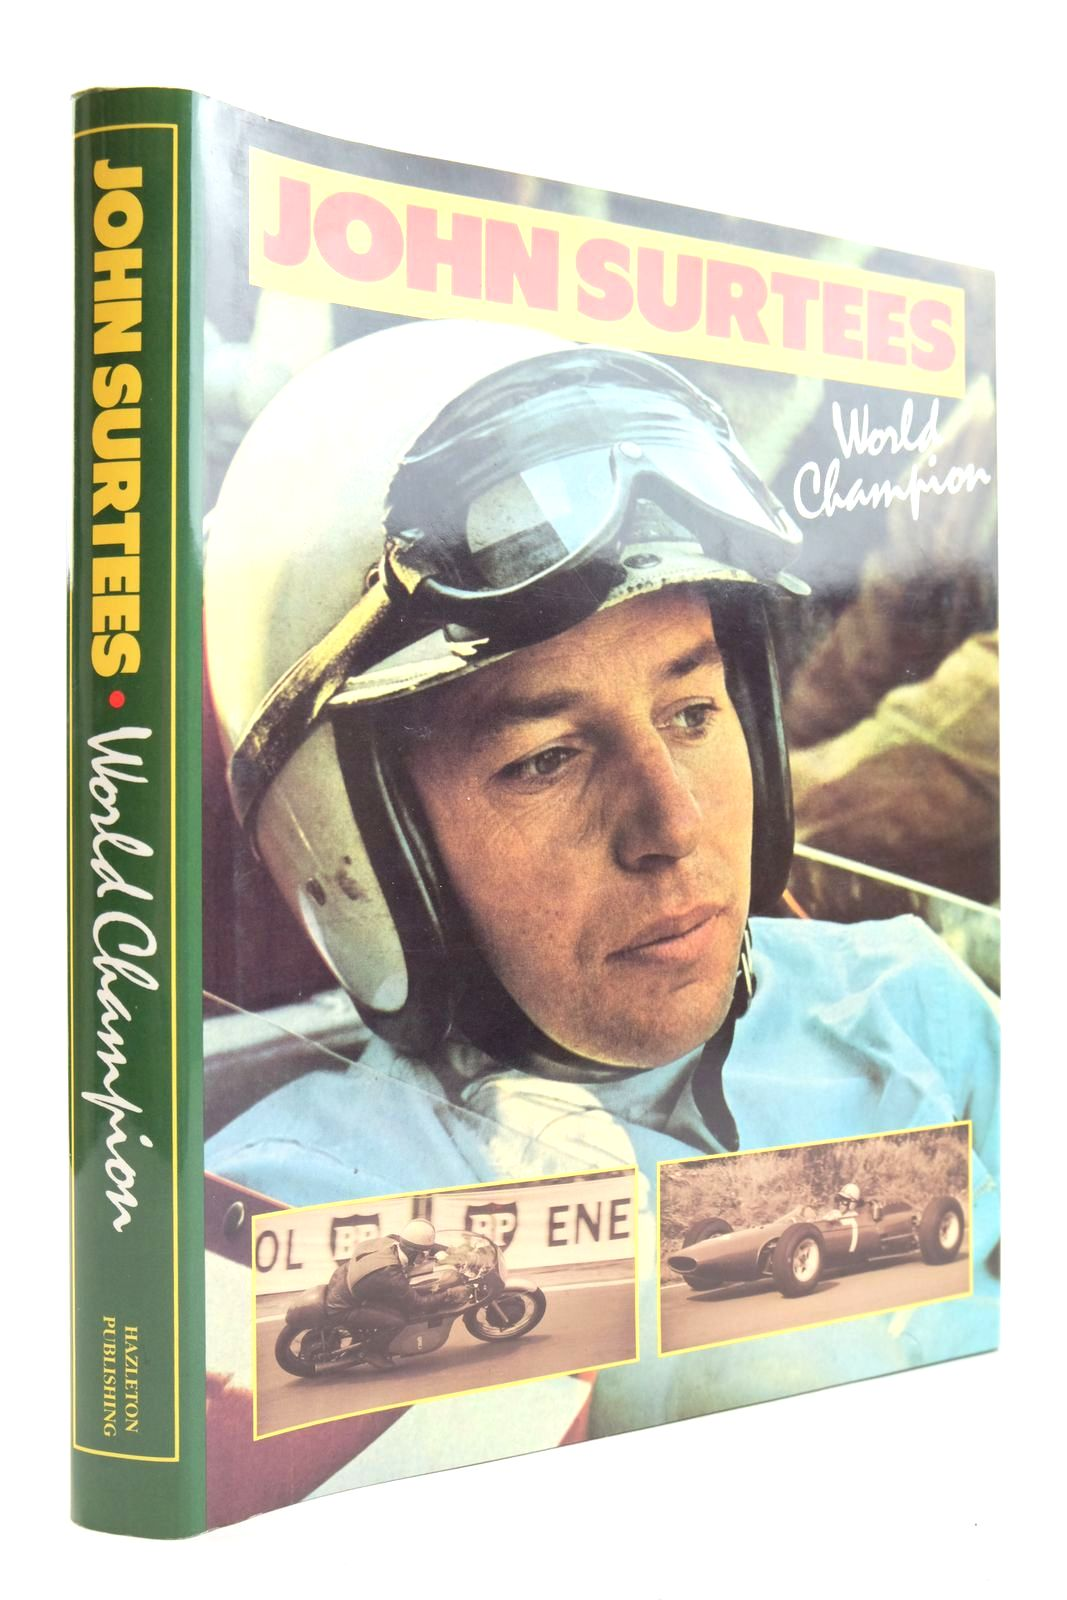 Photo of JOHN SURTEES WORLD CHAMPION written by Surtees, John Henry, Alan published by Hazleton Publishing (STOCK CODE: 2132980)  for sale by Stella & Rose's Books